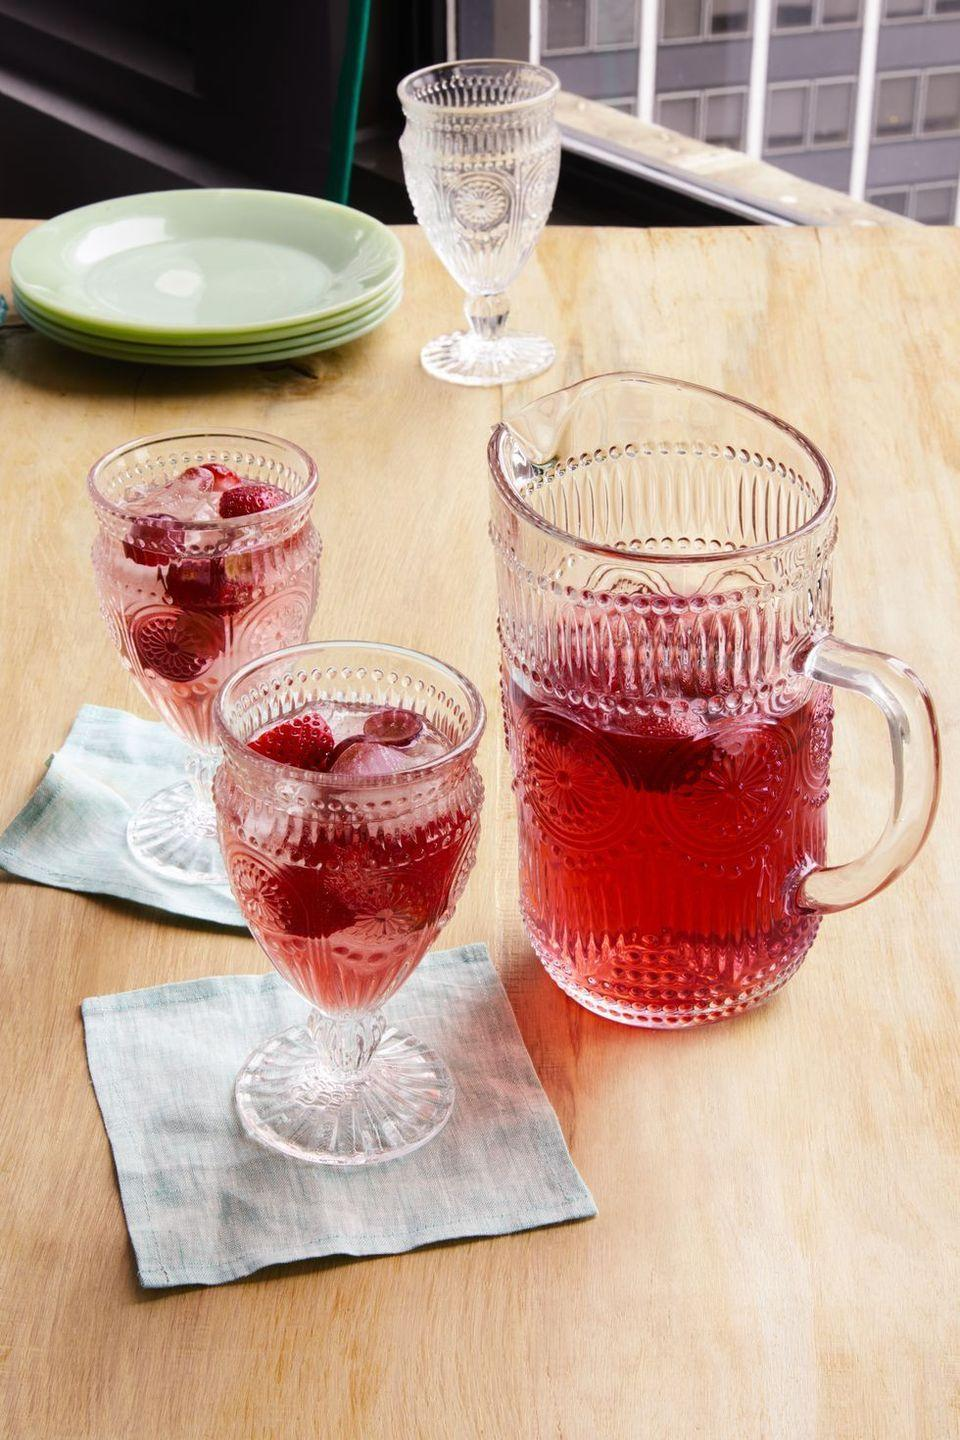 """<p>This strawberry sangria will quench your thirst in a sweet, satisfying way.</p><p><strong><a href=""""https://www.thepioneerwoman.com/food-cooking/recipes/a32304366/strawberry-sangria-recipe/"""" rel=""""nofollow noopener"""" target=""""_blank"""" data-ylk=""""slk:Get the recipe."""" class=""""link rapid-noclick-resp"""">Get the recipe.</a></strong></p><p><a class=""""link rapid-noclick-resp"""" href=""""https://go.redirectingat.com?id=74968X1596630&url=https%3A%2F%2Fwww.walmart.com%2Fsearch%2F%3Fquery%3Dpitchers&sref=https%3A%2F%2Fwww.thepioneerwoman.com%2Ffood-cooking%2Fmeals-menus%2Fg35585877%2Feaster-recipes%2F"""" rel=""""nofollow noopener"""" target=""""_blank"""" data-ylk=""""slk:SHOP PITCHERS"""">SHOP PITCHERS</a></p>"""